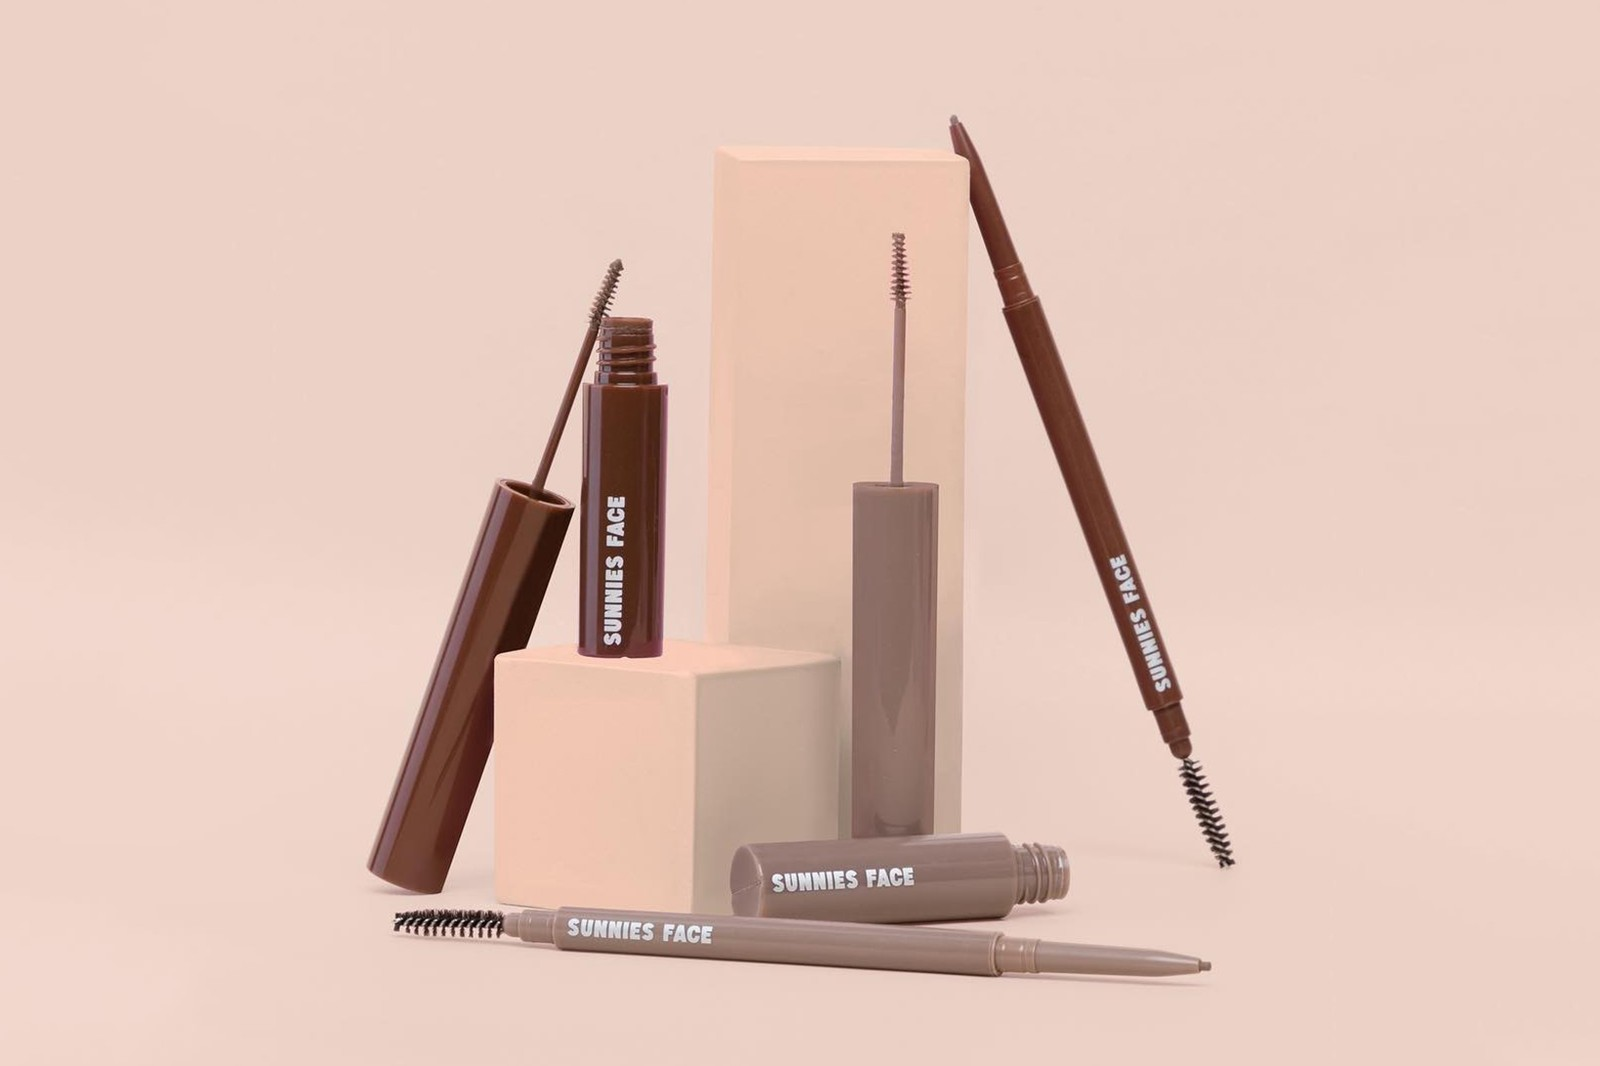 sunnies face lifebrow skinny pencil grooming gel eyebrows makeup philippines beauty